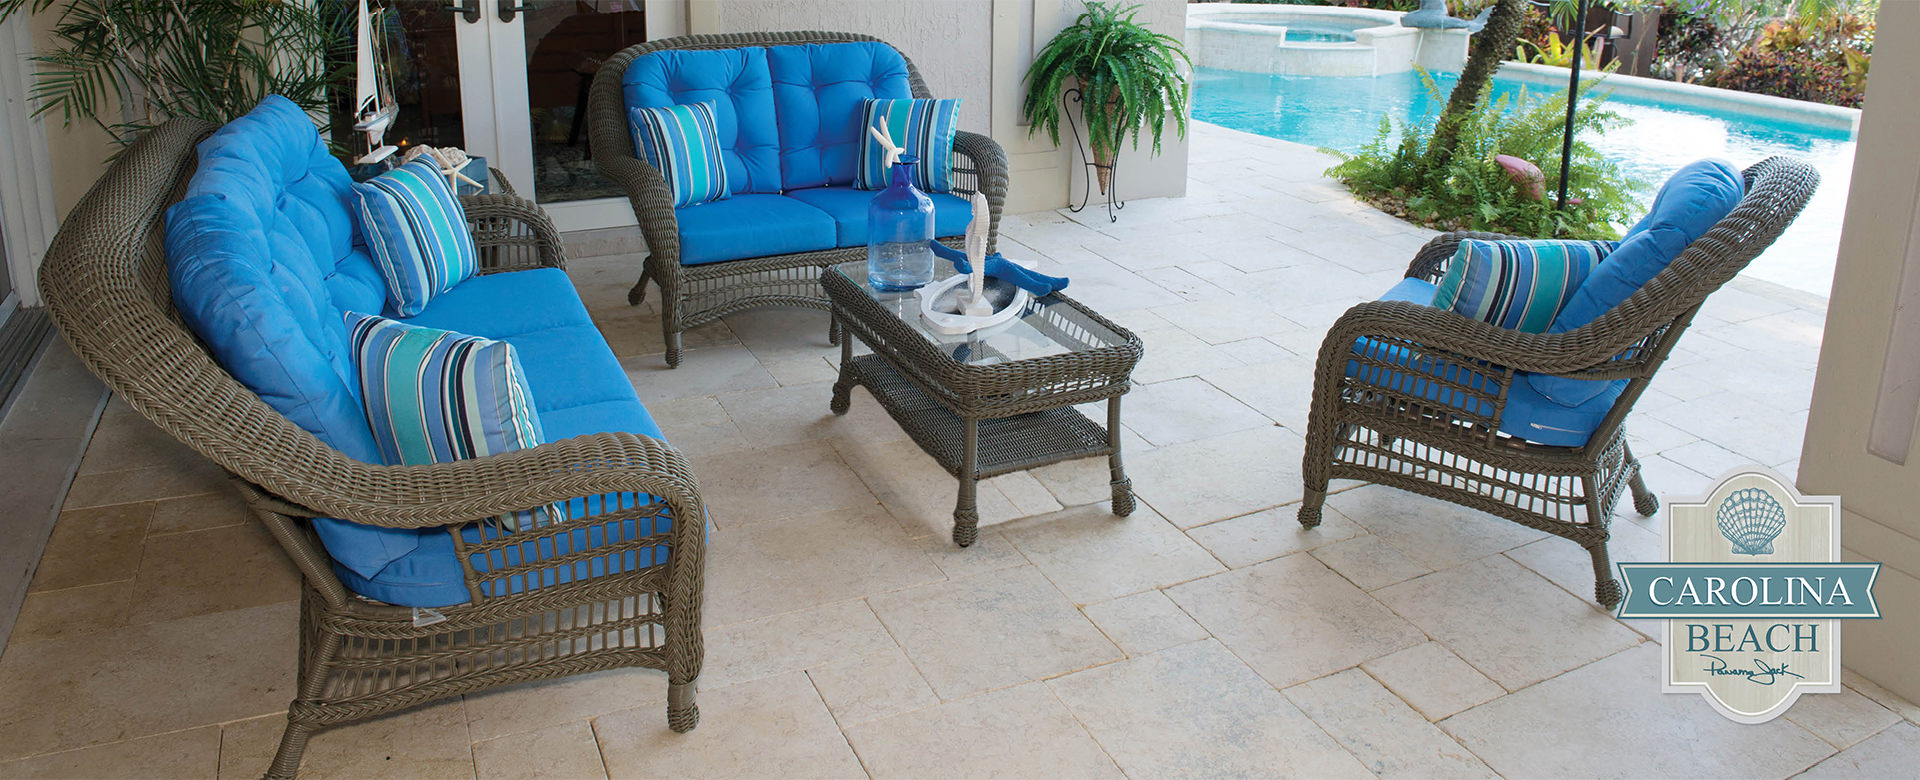 Pelican Reef  Panama Jack Outdoor Sunroom Furniture